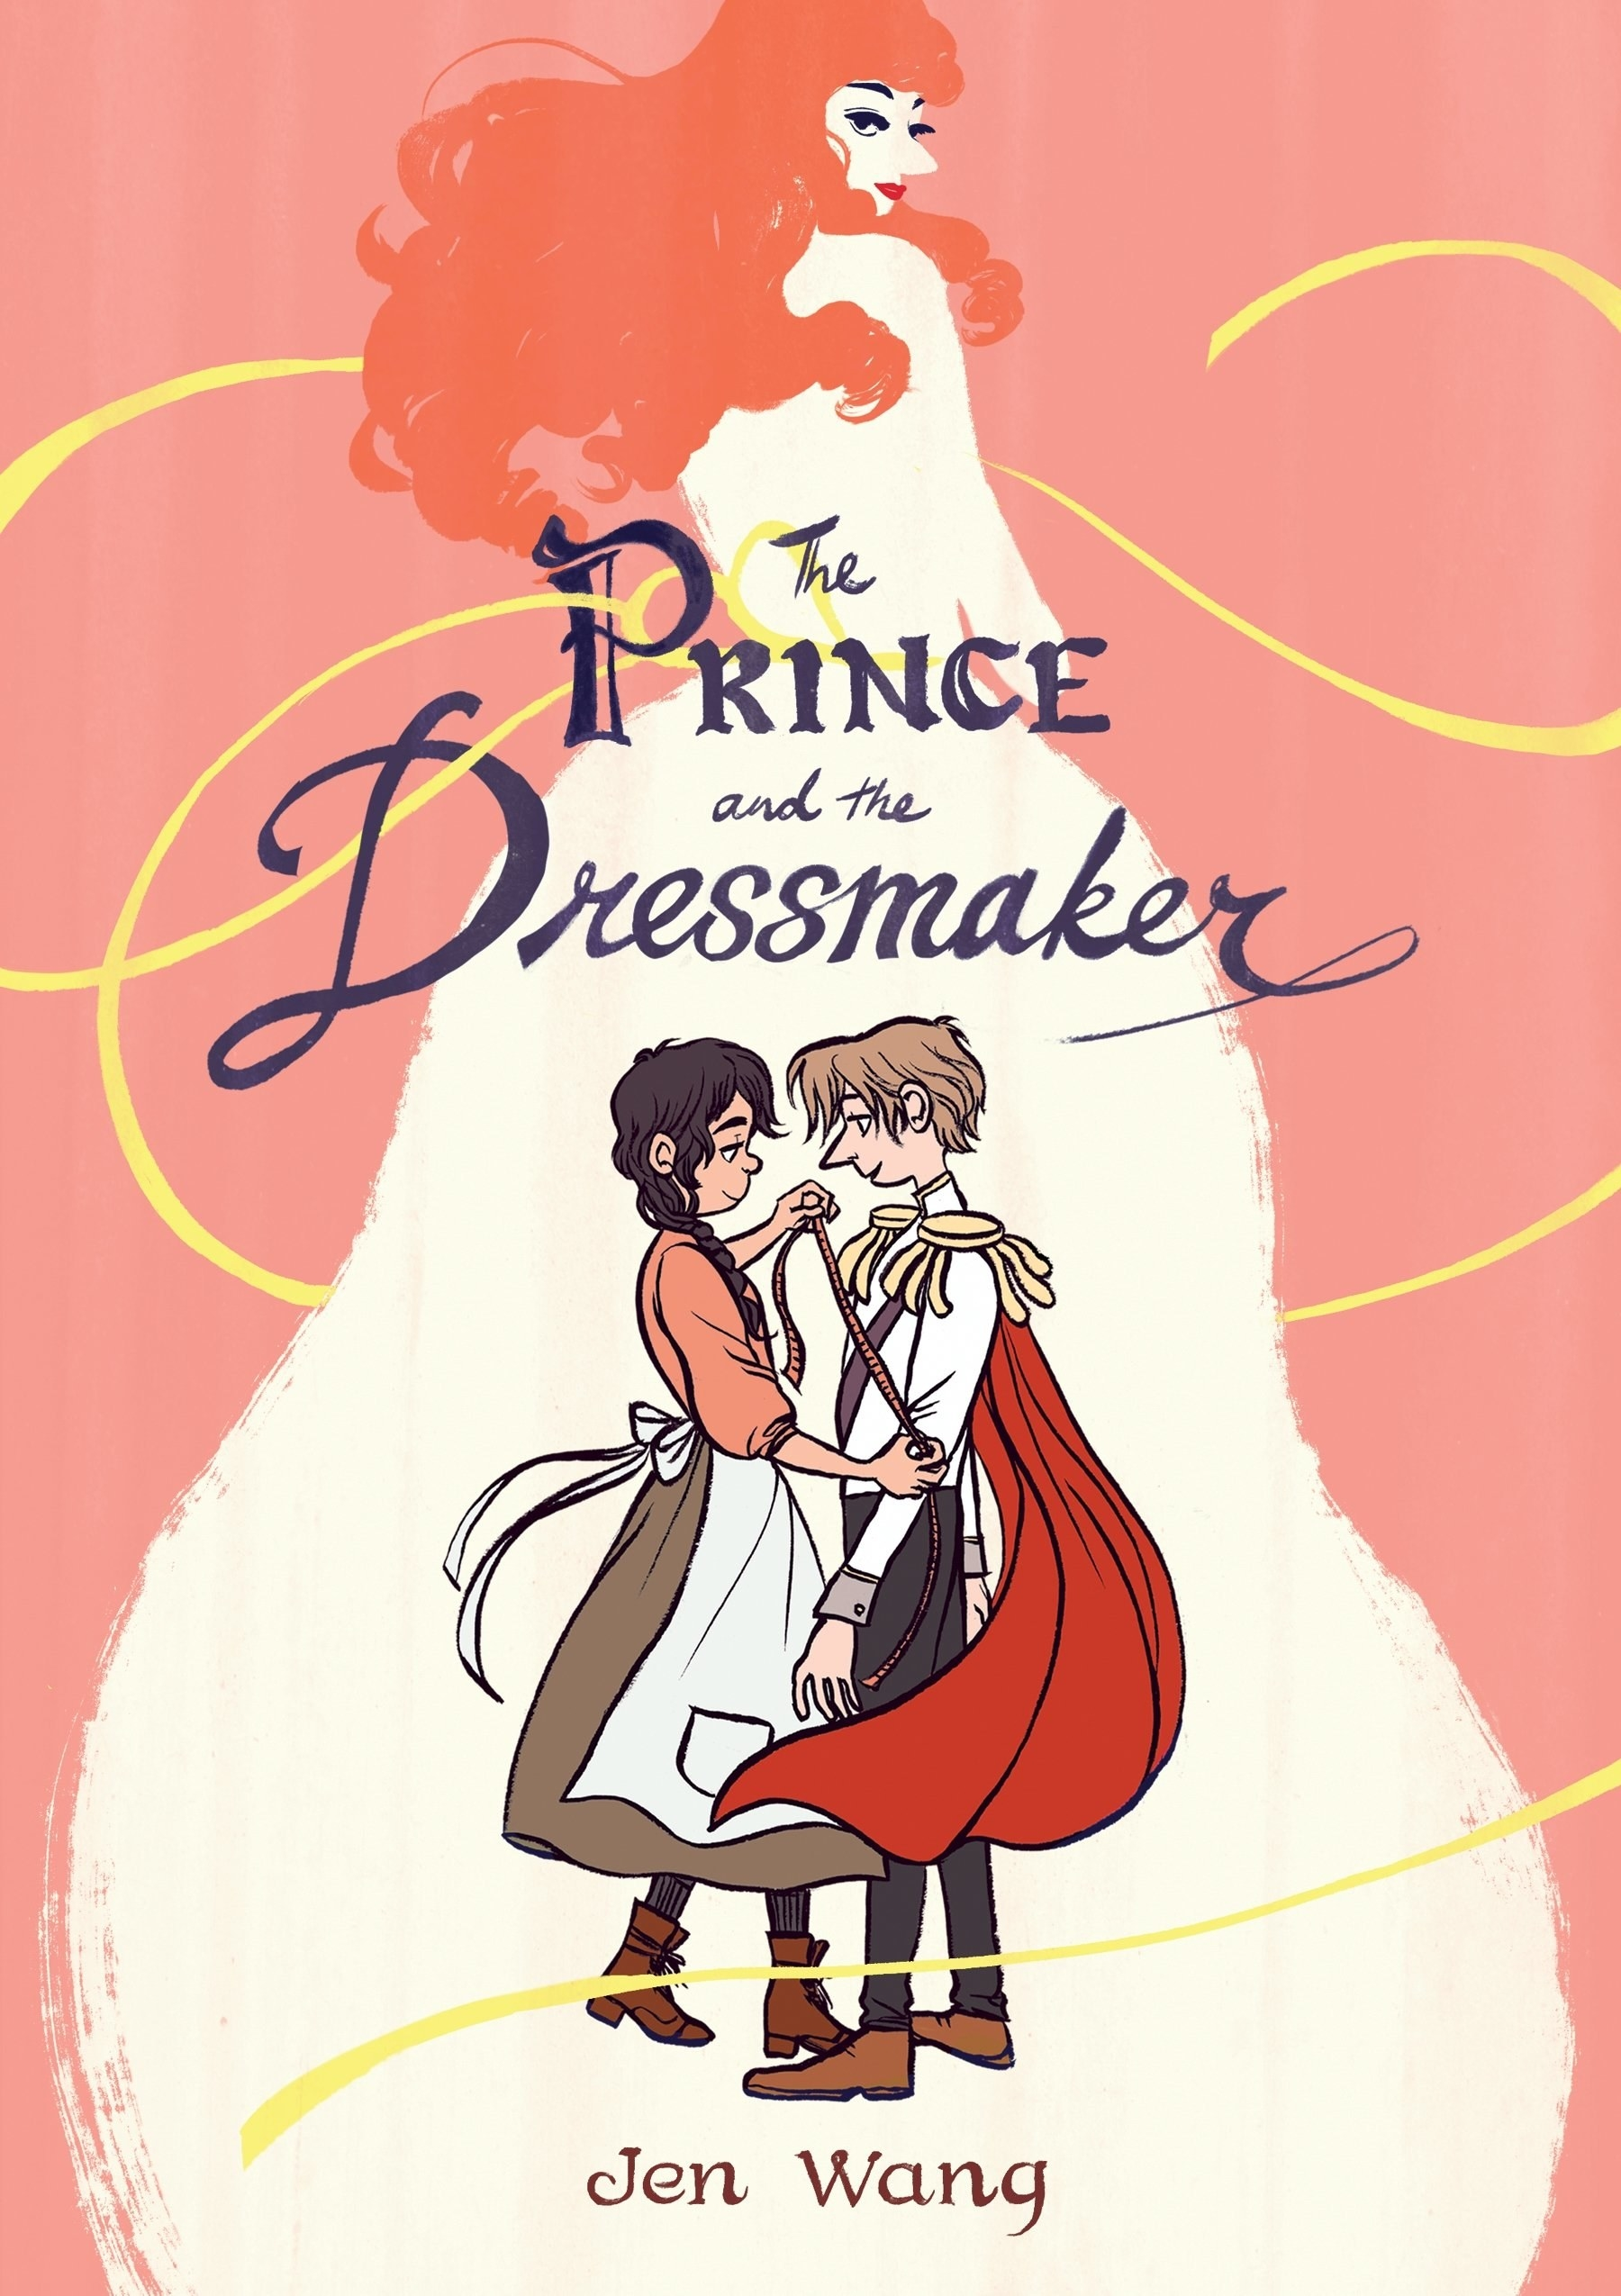 The prince and dressmaker looking into each other's eyes on the cover